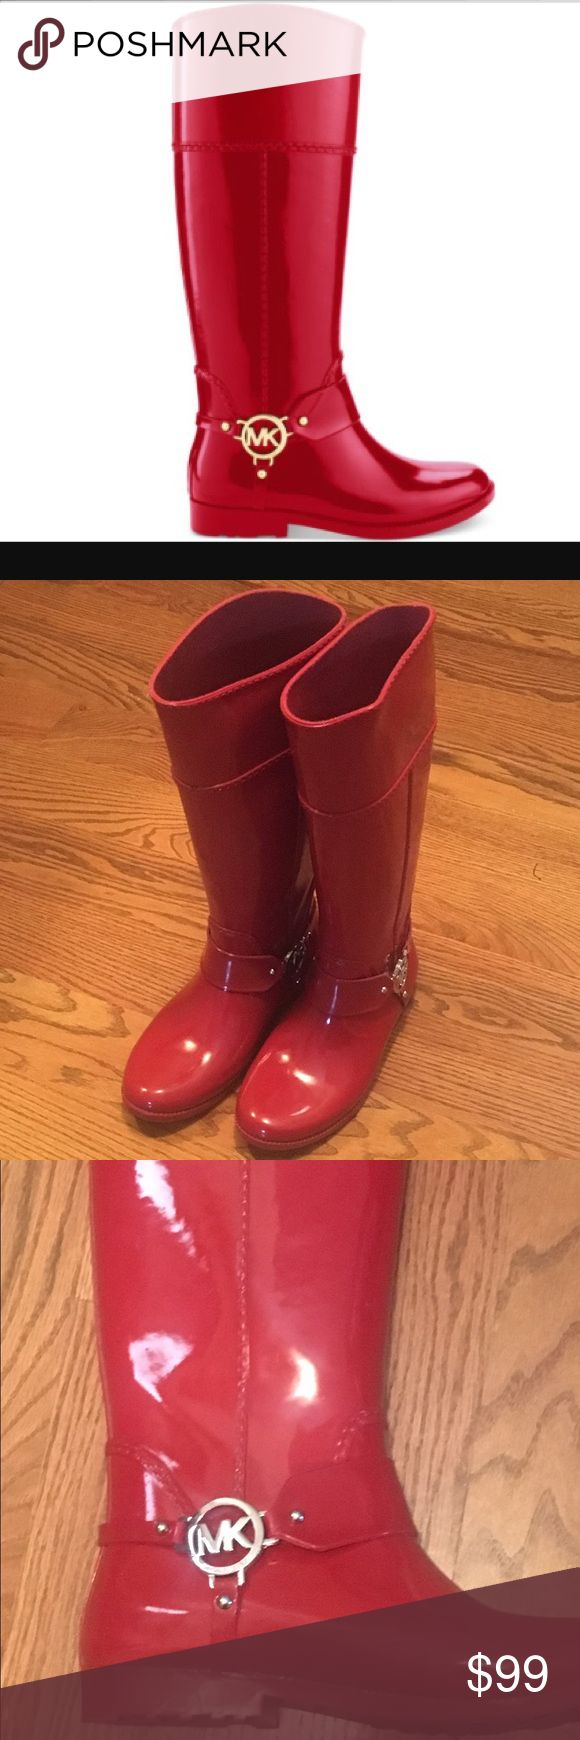 Michael KORS Fulton RAIN BOOTS Talk Michael KORS rubber rain riding boots, MK silver logo. Candy apple Red. Worn maybe 5 times. Bottoms had a film that rubs off after first wear but still of great condition. I worn these in the rain and it held up during my son soccer tournaments. I was so glad I had them, it rain the whole weekend! Soccer mom problems solved.  Great condition. Comes with box!! :)  Size 8. MICHAEL Michael Kors Shoes Winter & Rain Boots